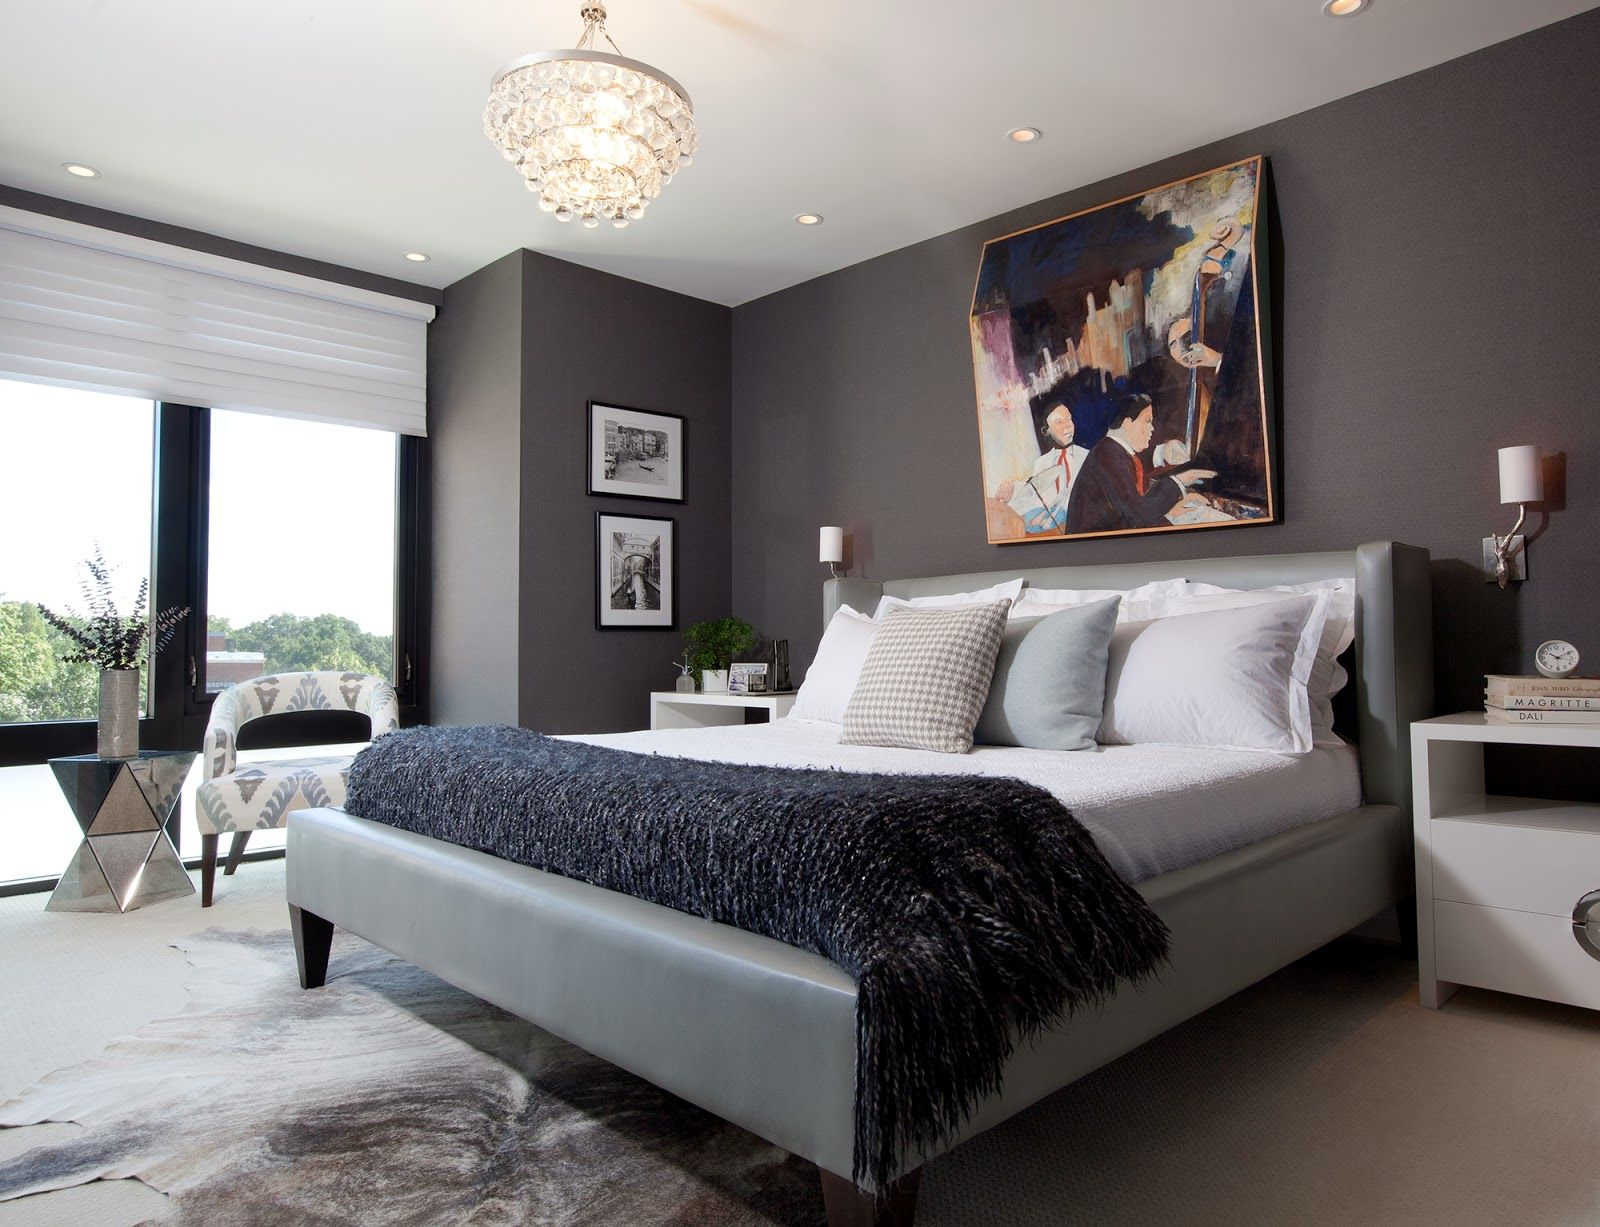 Charming Master Bedroom Charcoal Dark Gray Wall Paper Upholstered Modern Platform  Bed Amy Elbaum Designs Cococozy